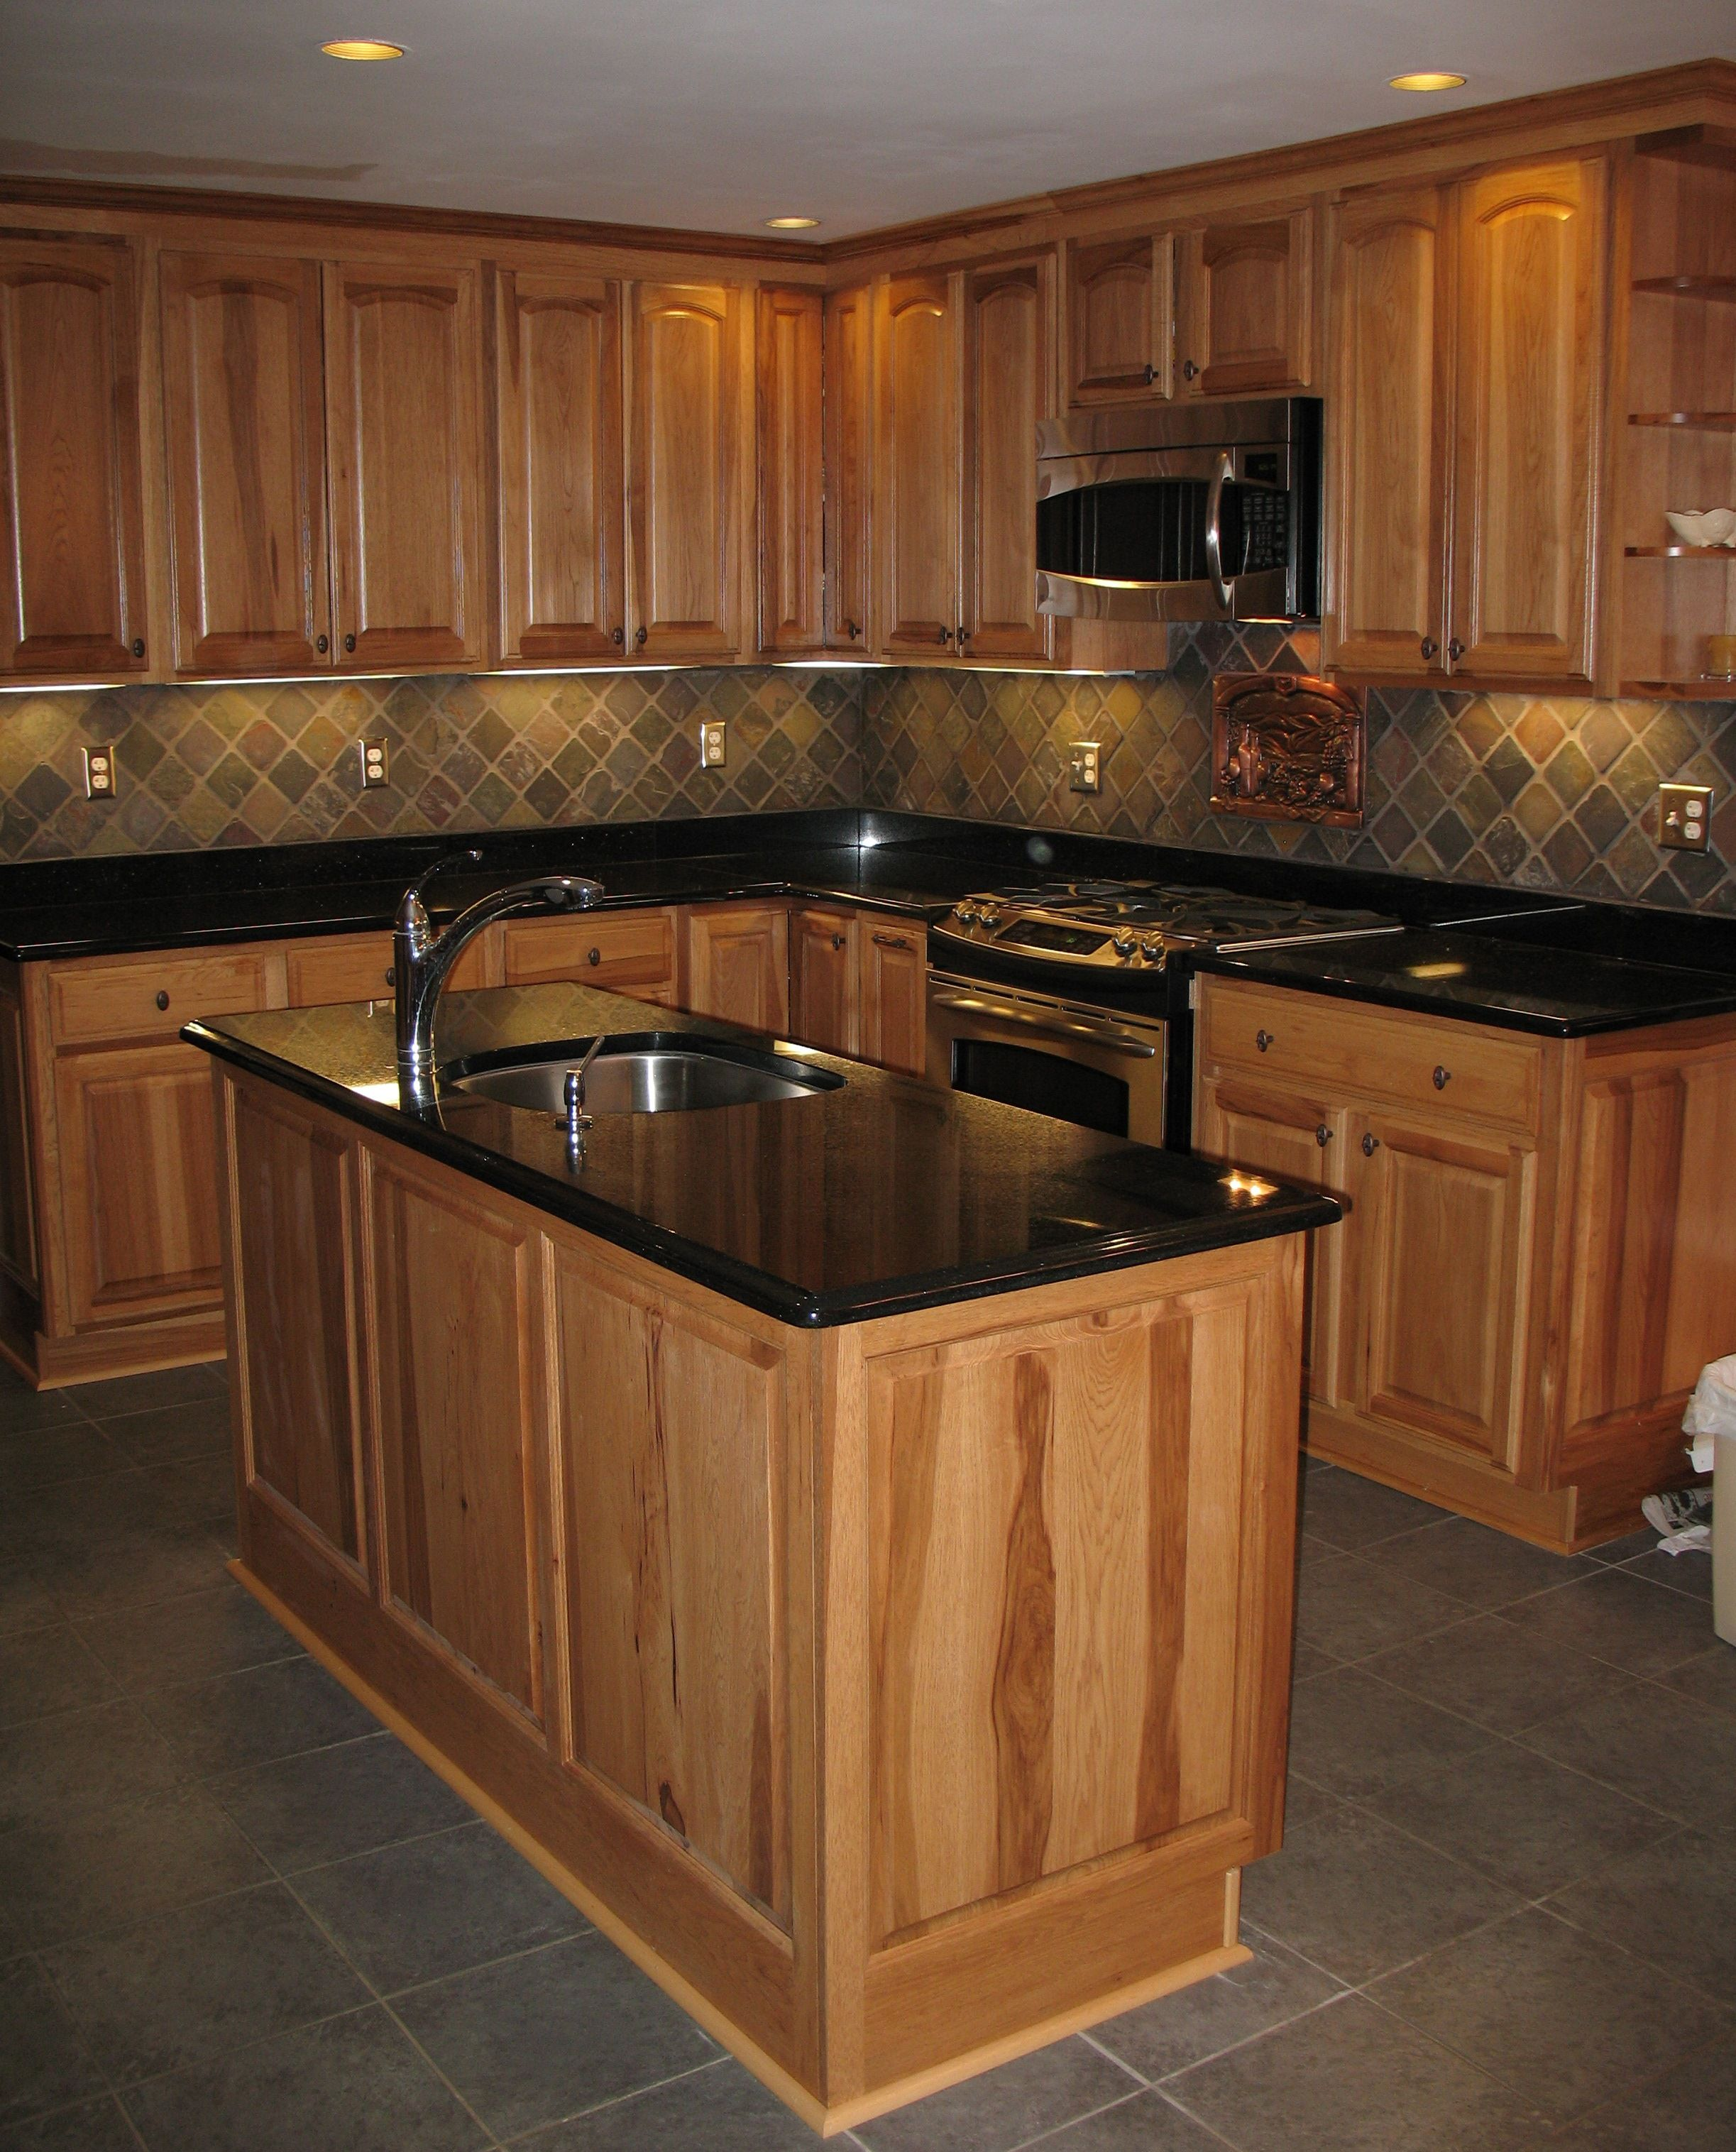 Granite Kitchen Countertops With Backsplash: My Husband And I Installed This Slate Backsplash